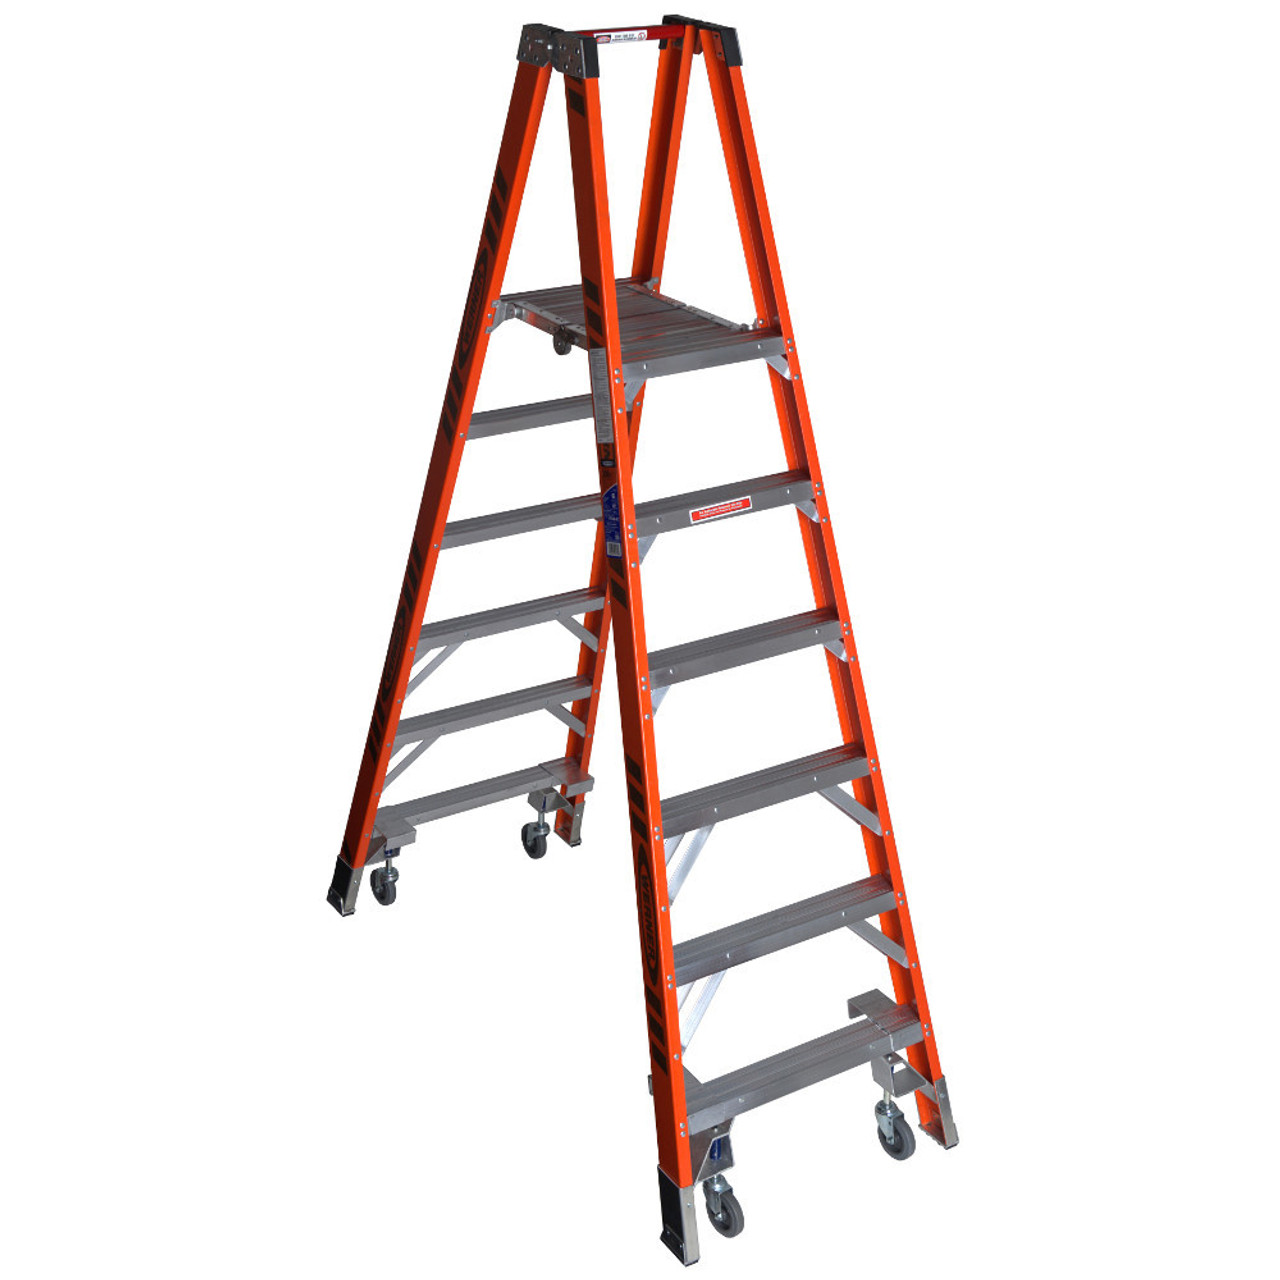 Store Stockr's Ladders